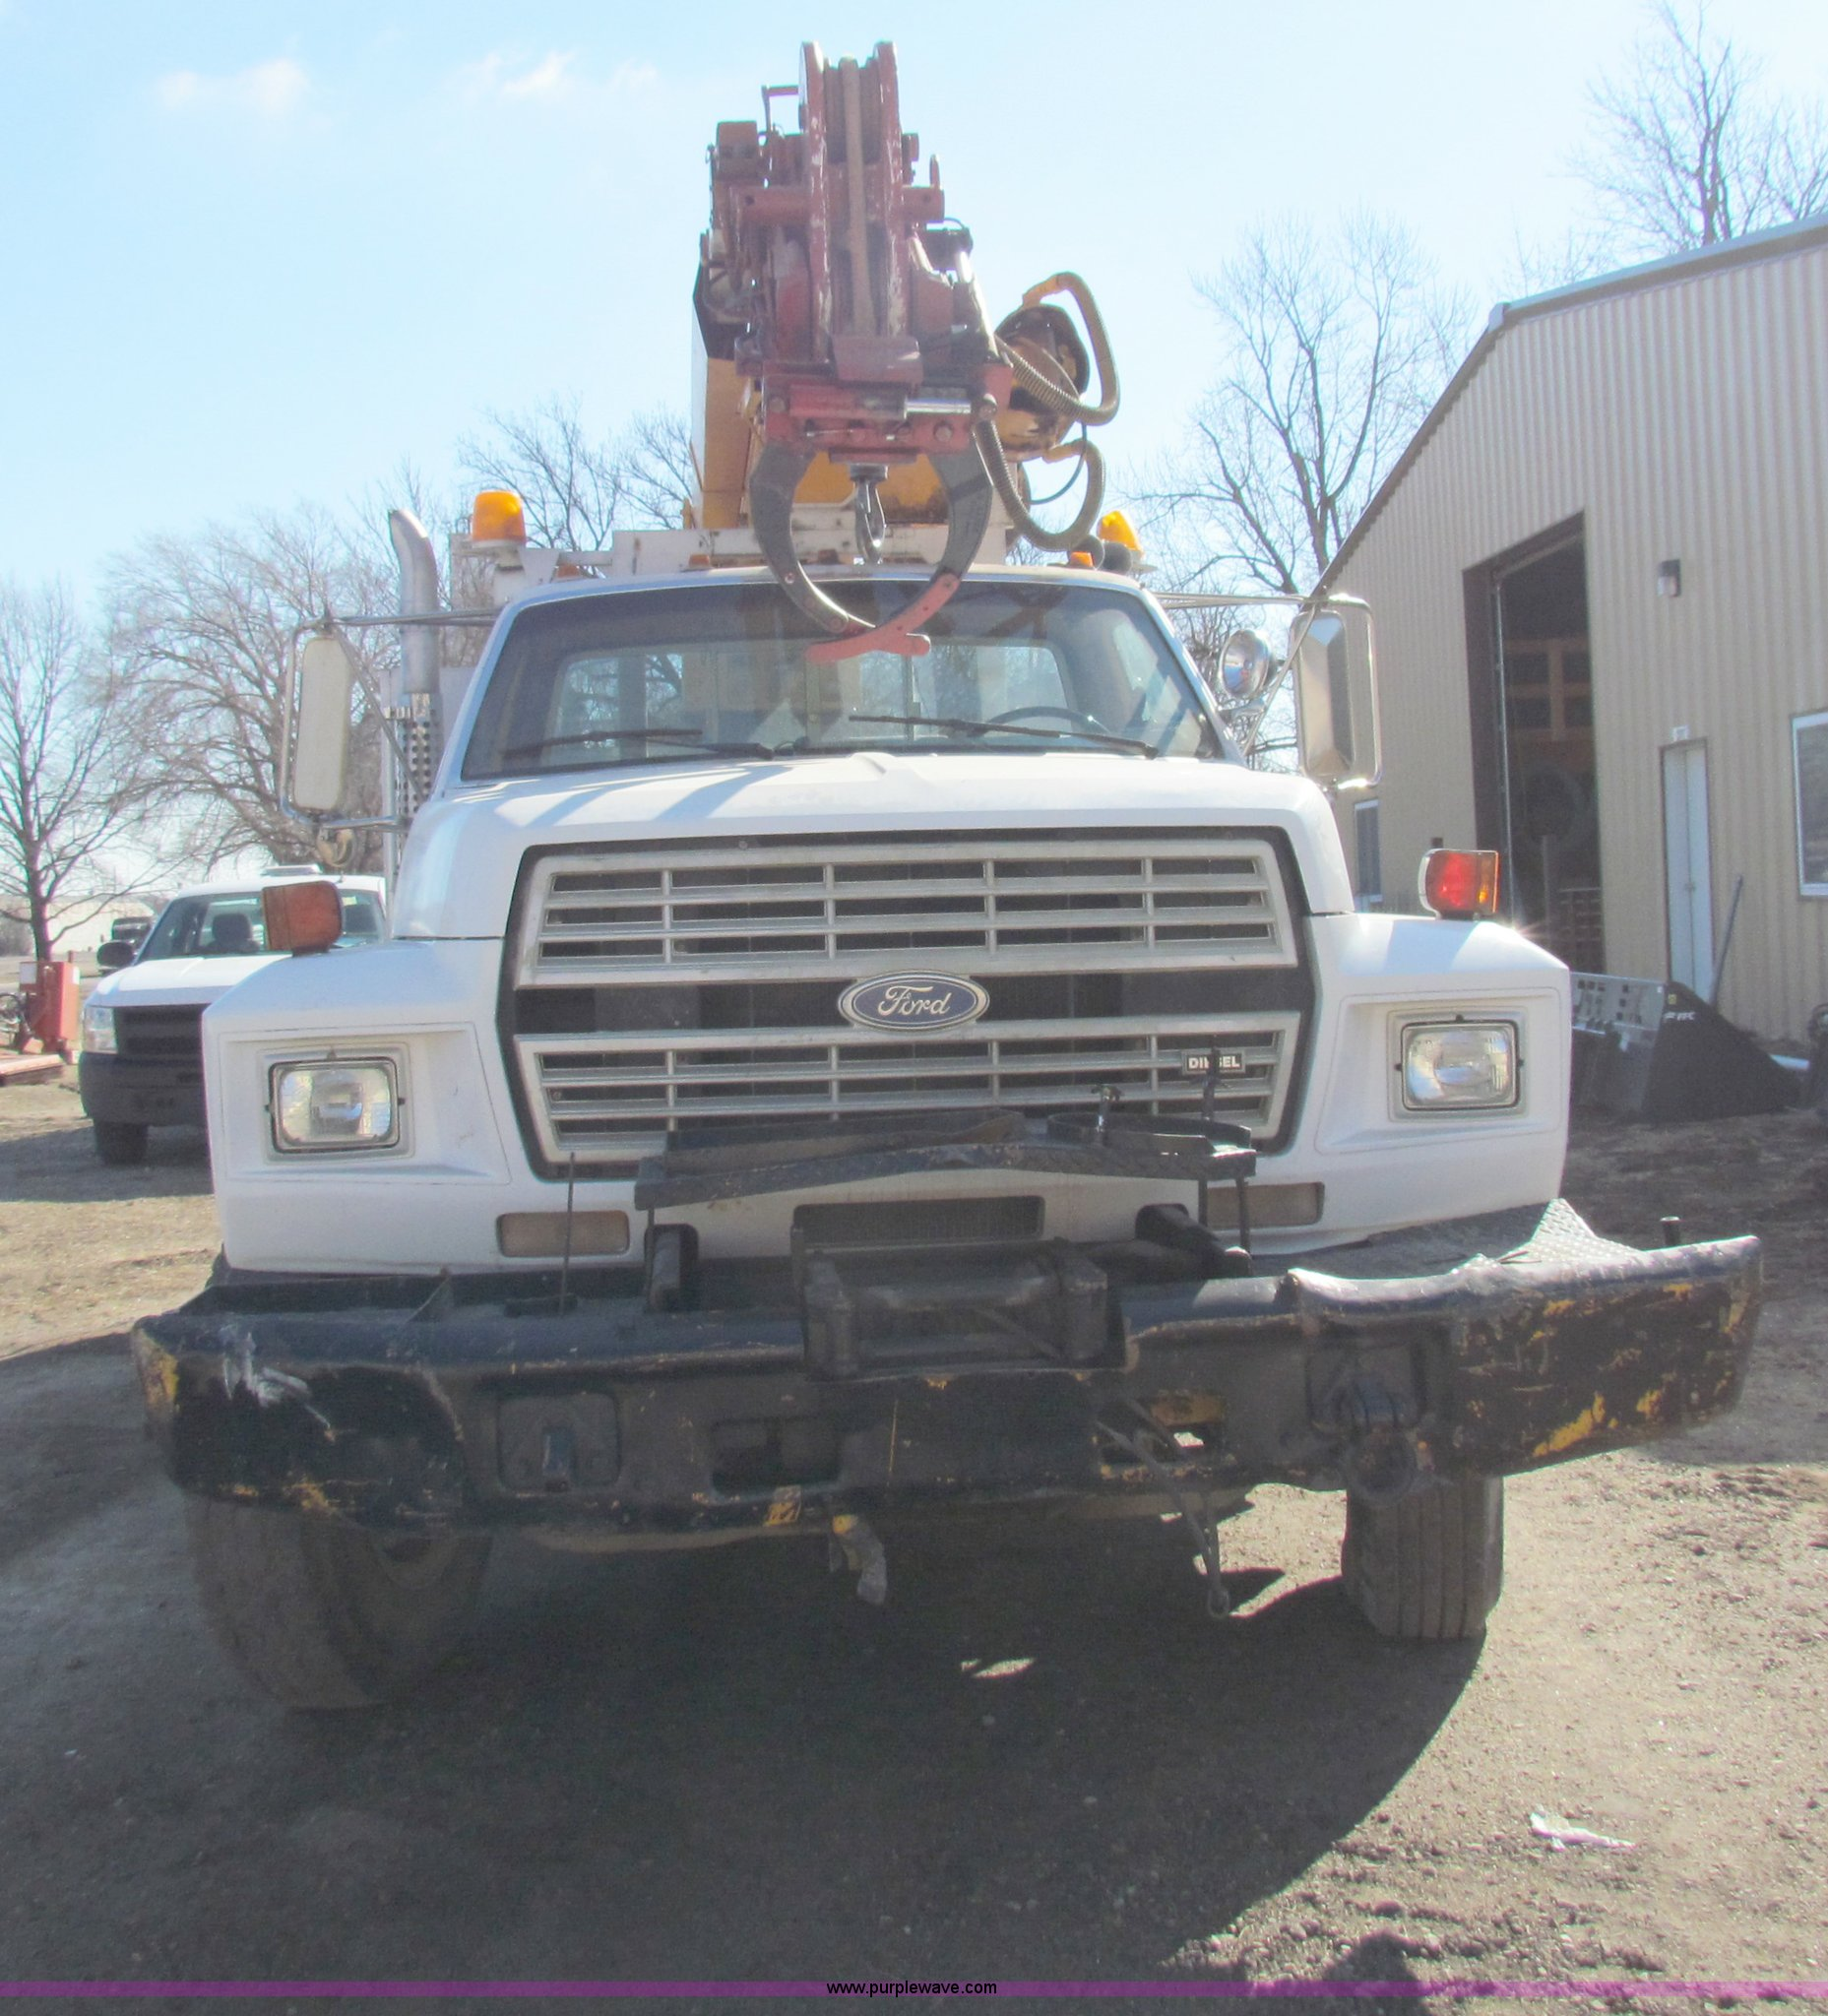 ... 1987 Ford F800 digger derrick truck Full size in new window ...